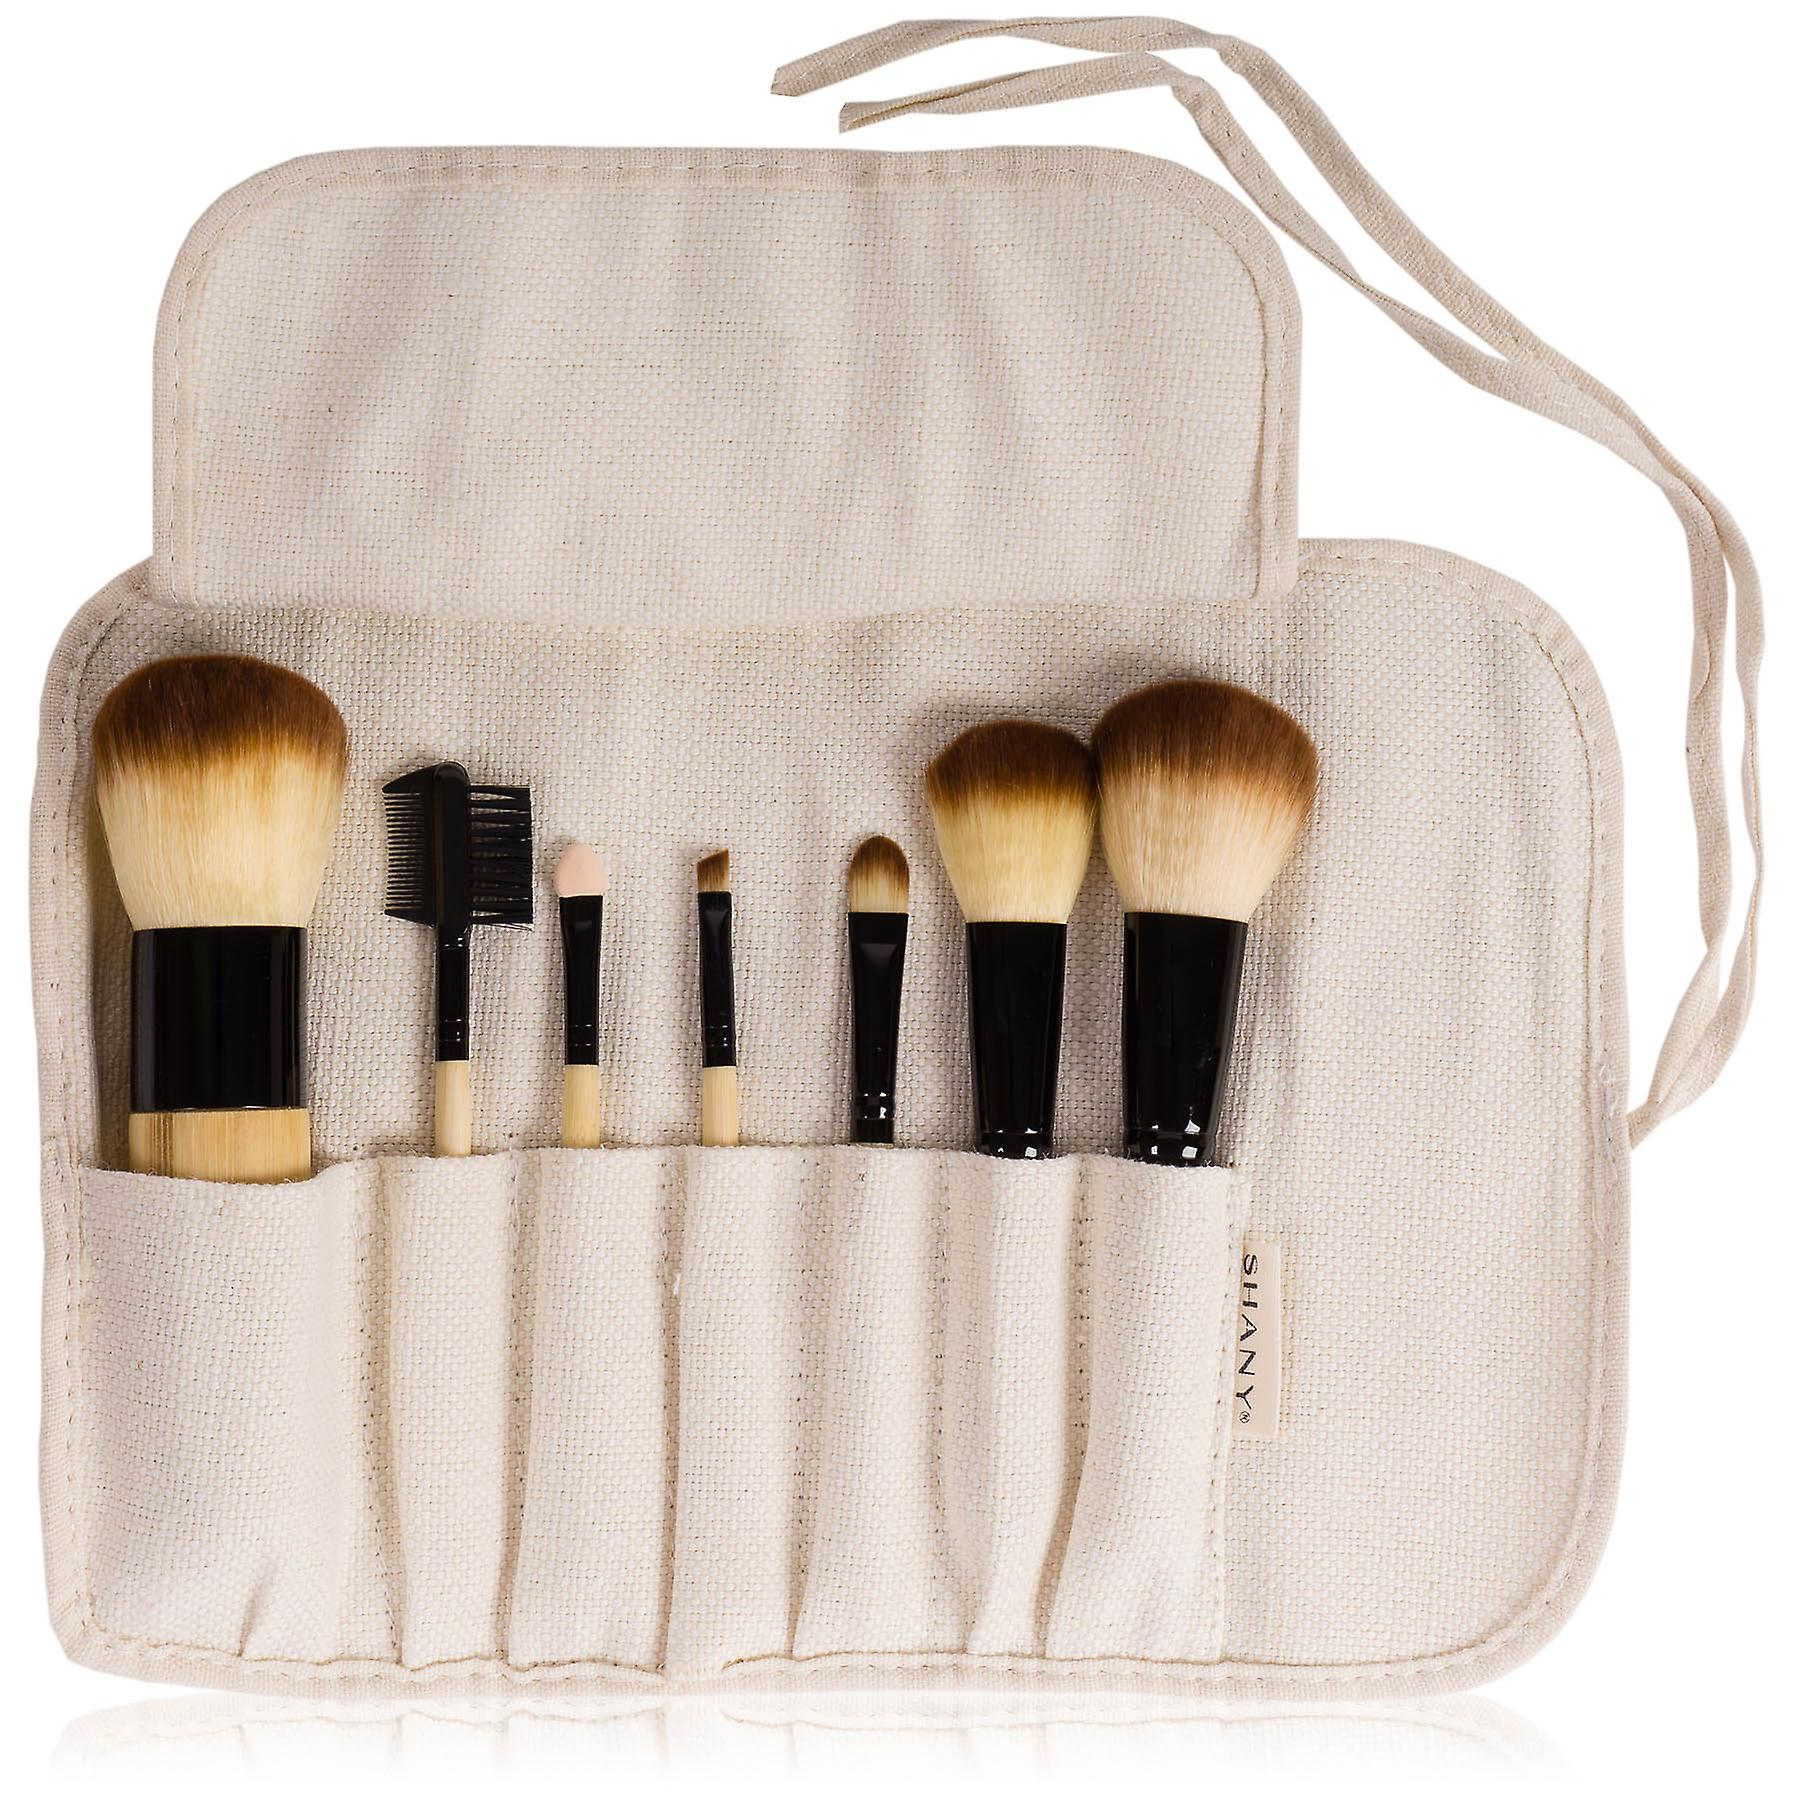 SHANY Bamboo Brush Set - Vegan Brushes With Premium Synthetic Hair & Cotton Pouch - 7pc